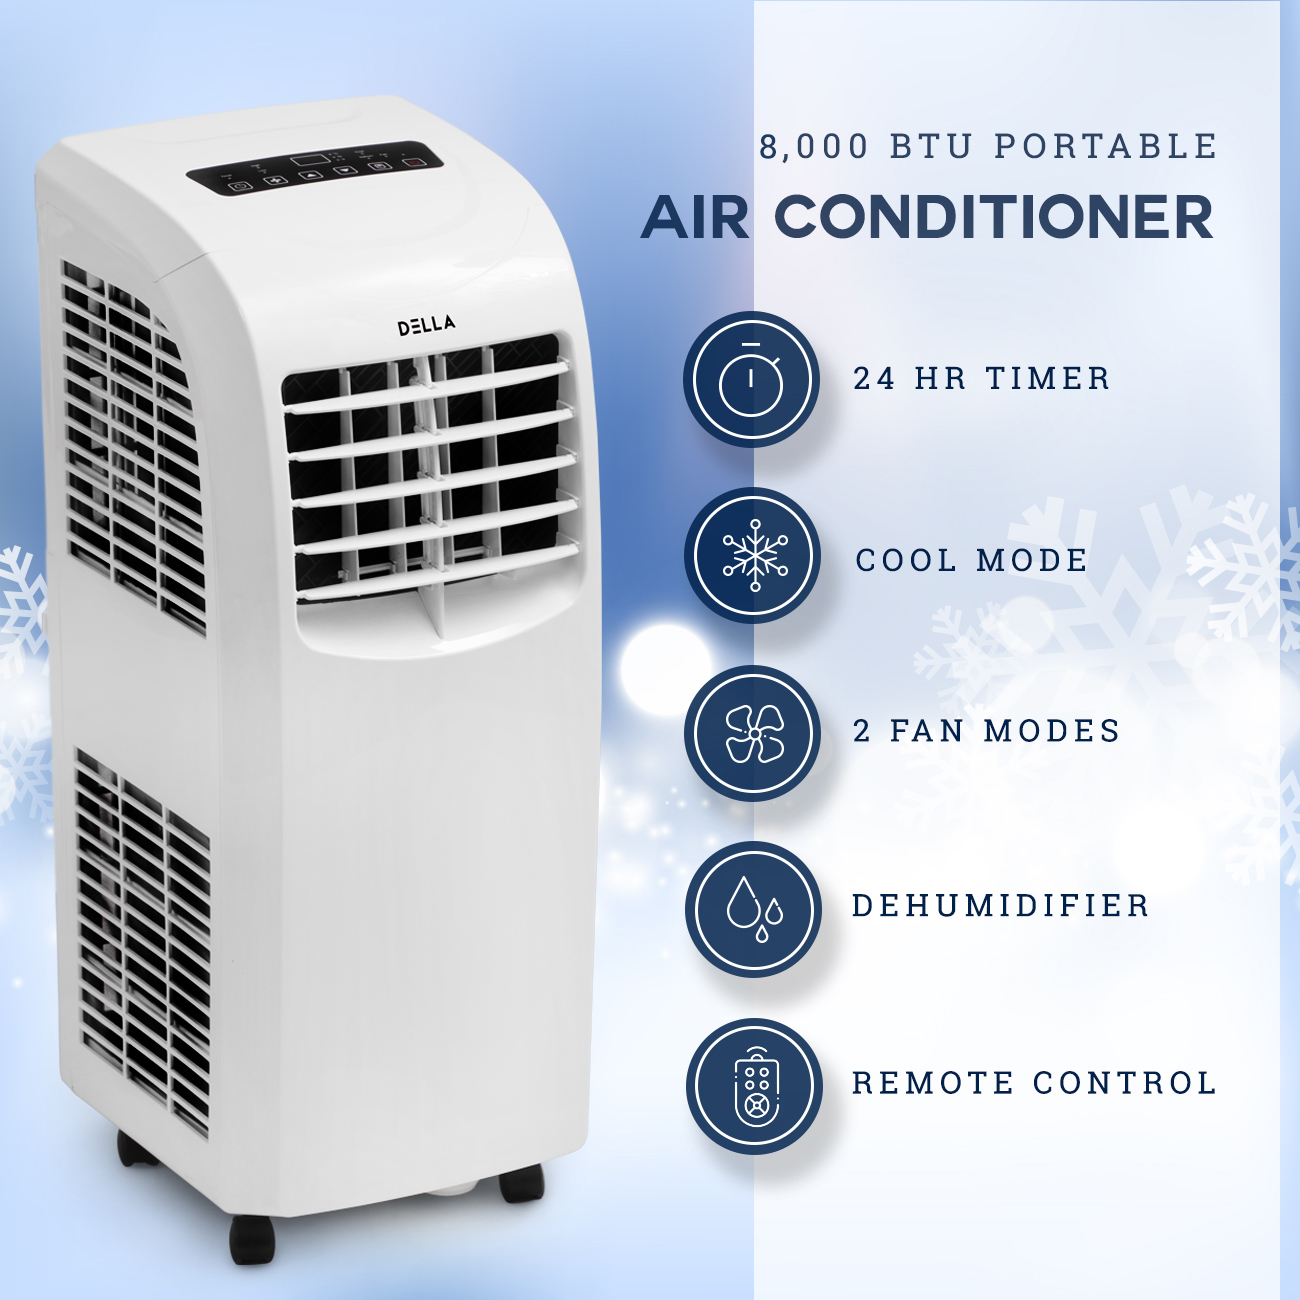 Cooler Air Units : Btu portable air conditioner cooling a c cool fan